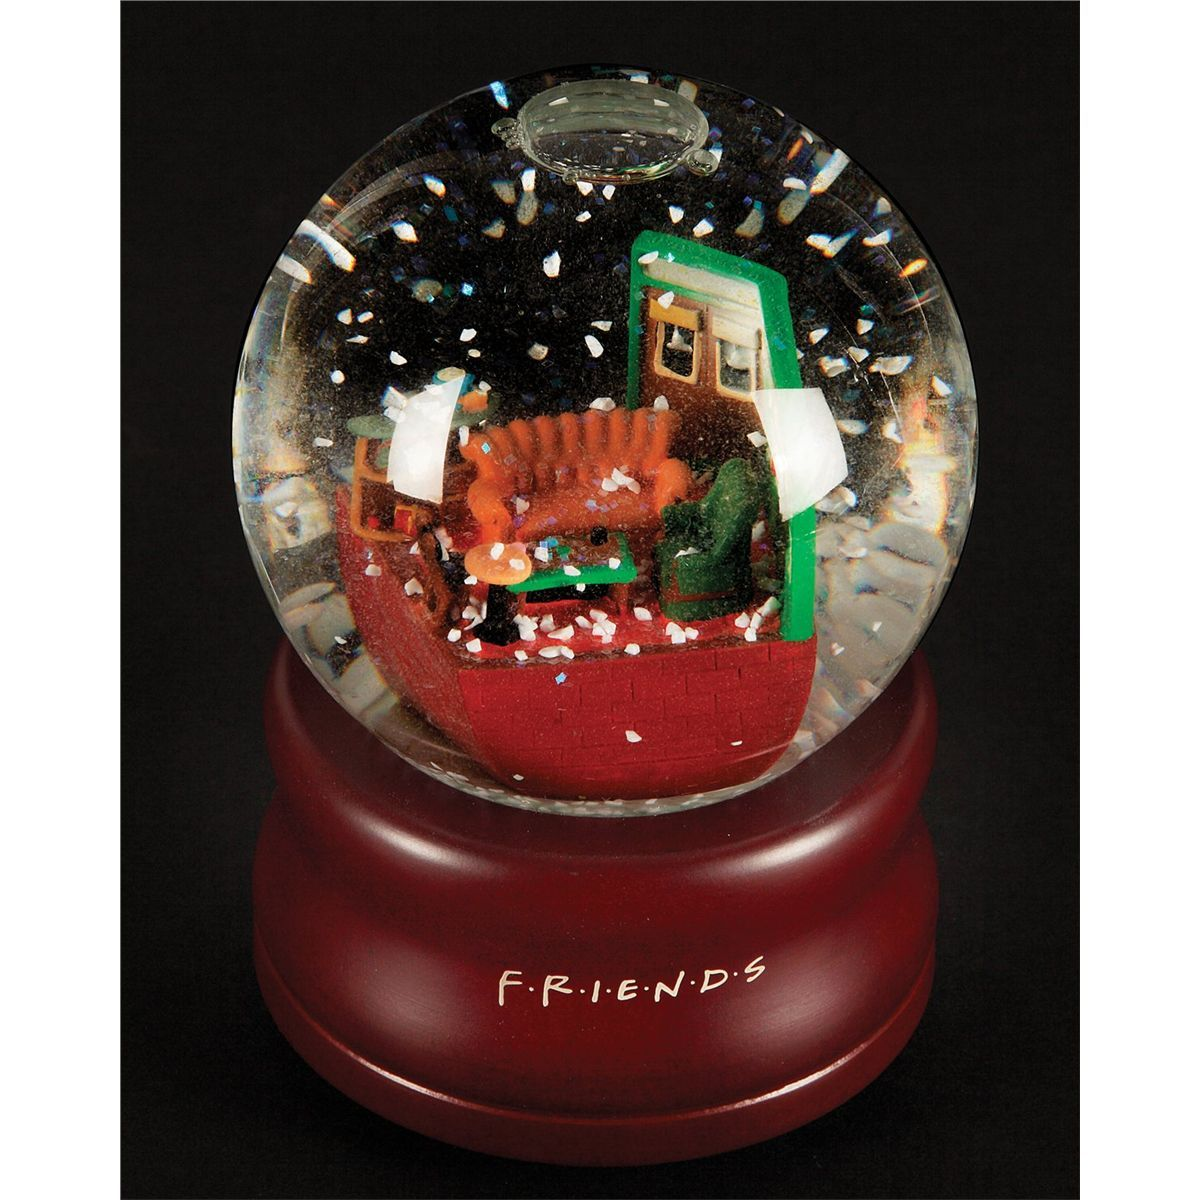 Will It Snow For Christmas Cast.Snow Globe Cast Only Christmas Gift From Friends Nbc Tv